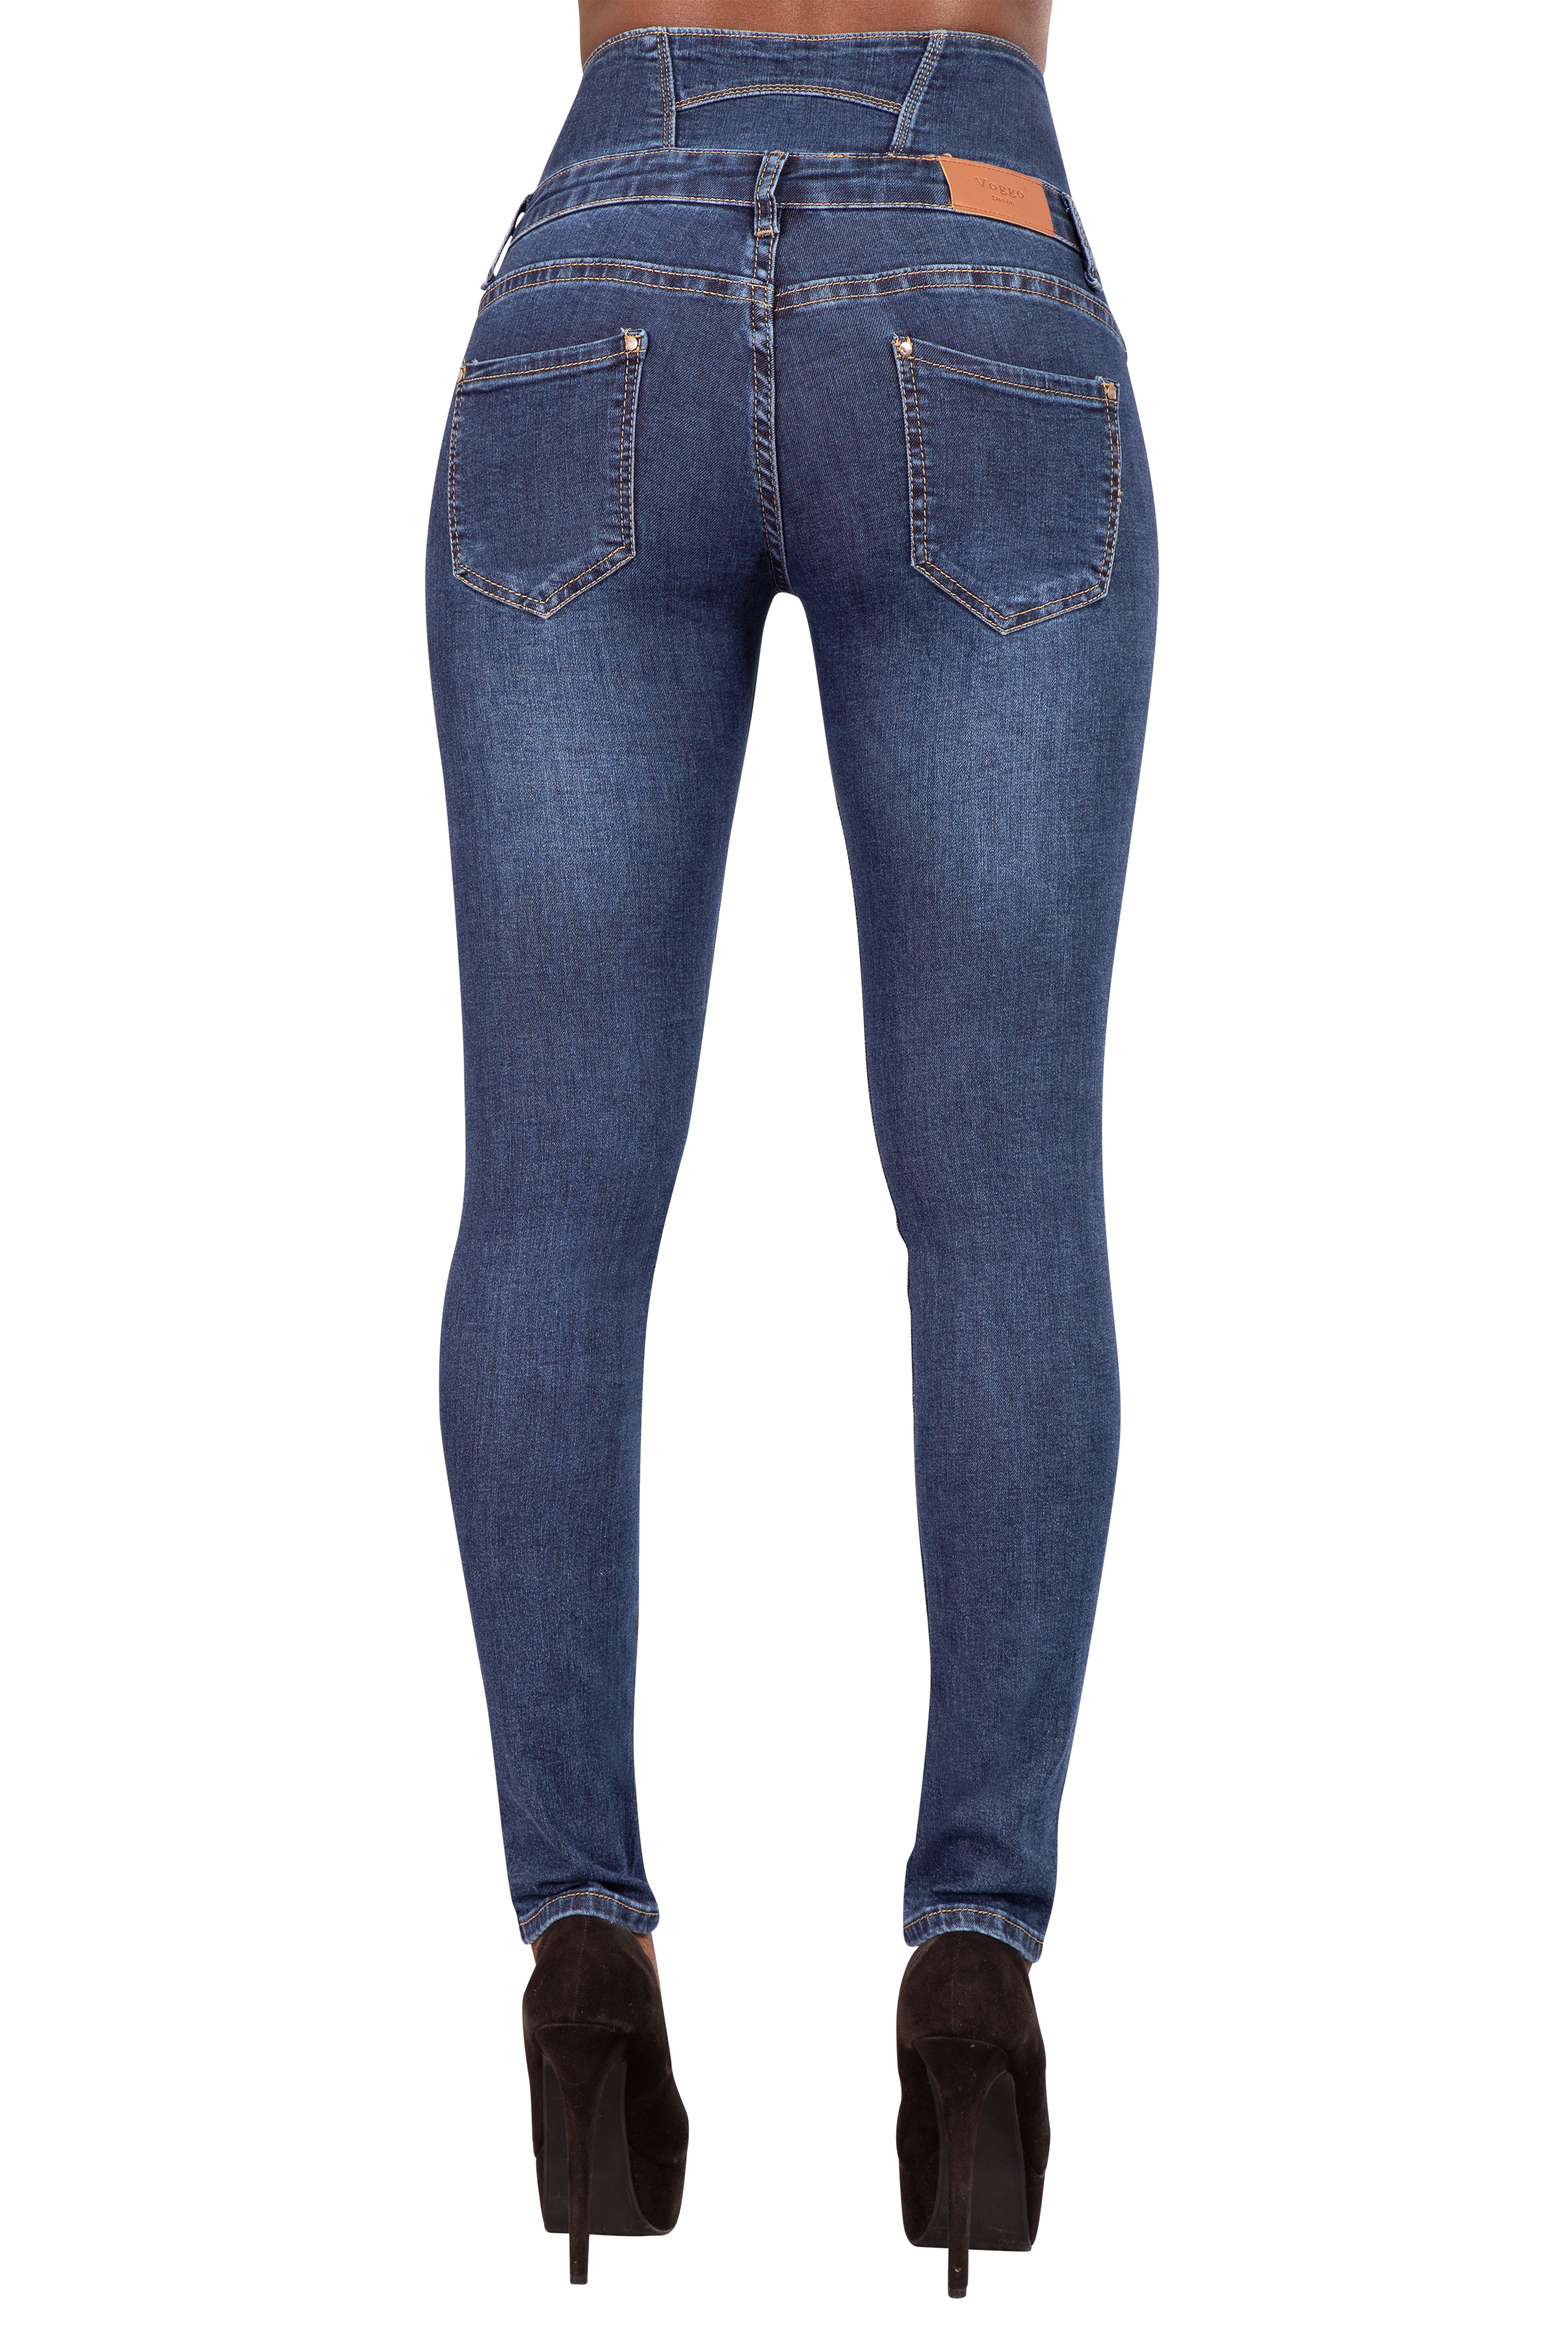 WOMENS HIGH WAISTED STRETCHY SKINNY JEANS LADIES JEGGINGS PANTs 8 10 12 14 16